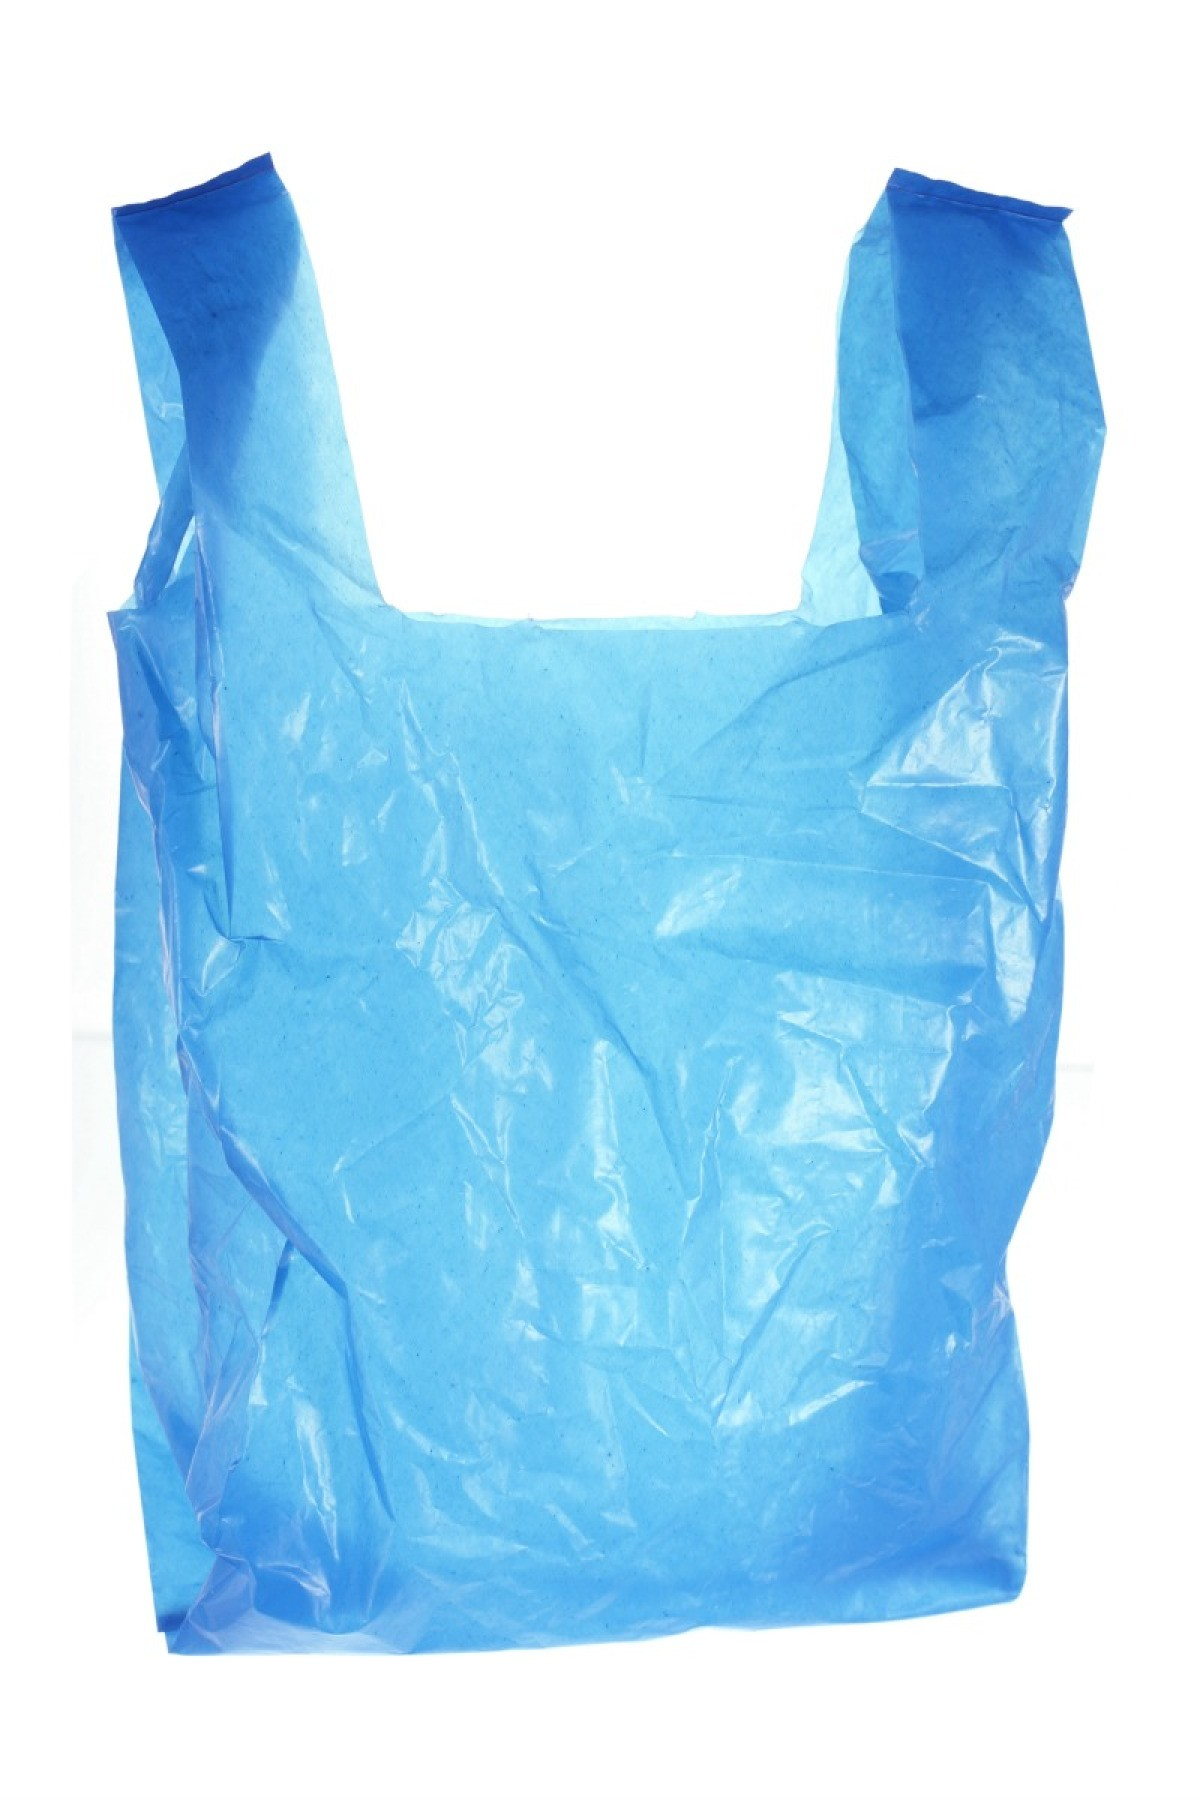 Uses for Plastic Grocery Bags | ThriftyFun